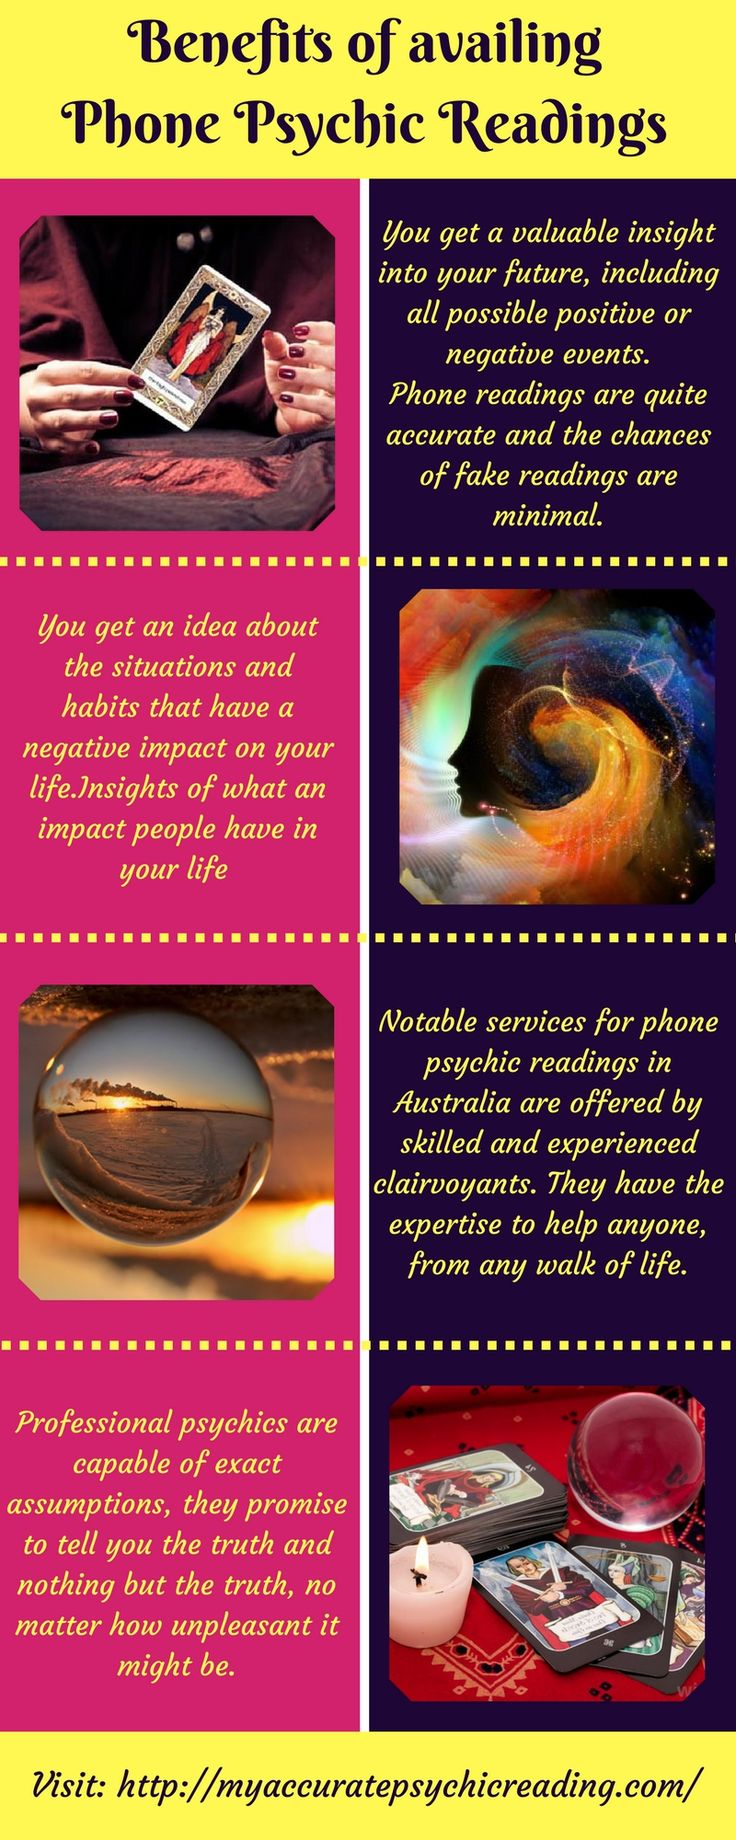 A phone psychic reading helps you in getting a valuable insight of your future, including all possible positive or negative events.